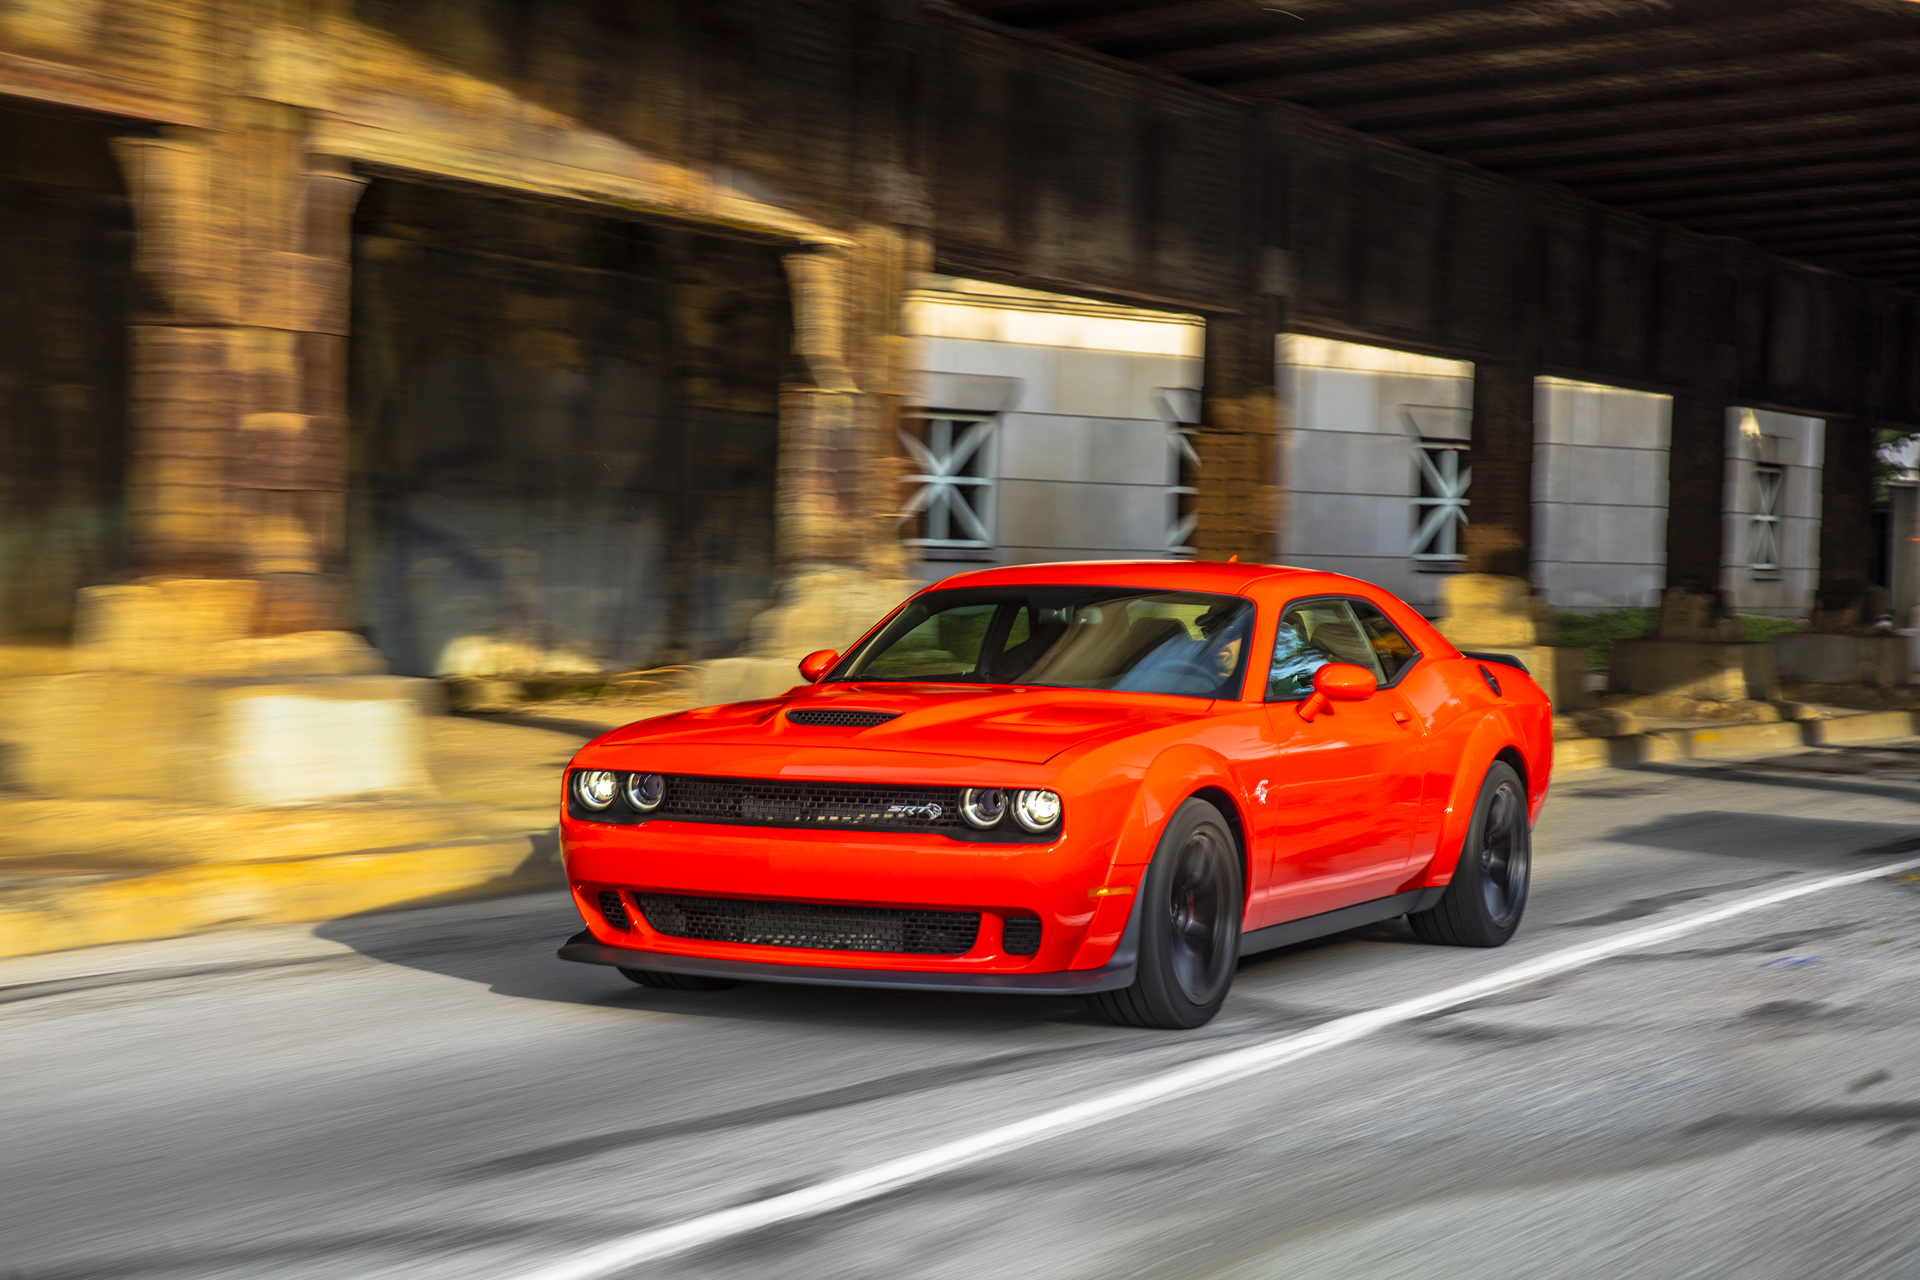 2018 Dodge Challenger Srt Hellcat Widebody First Drive Review Looks Incremental Improvements